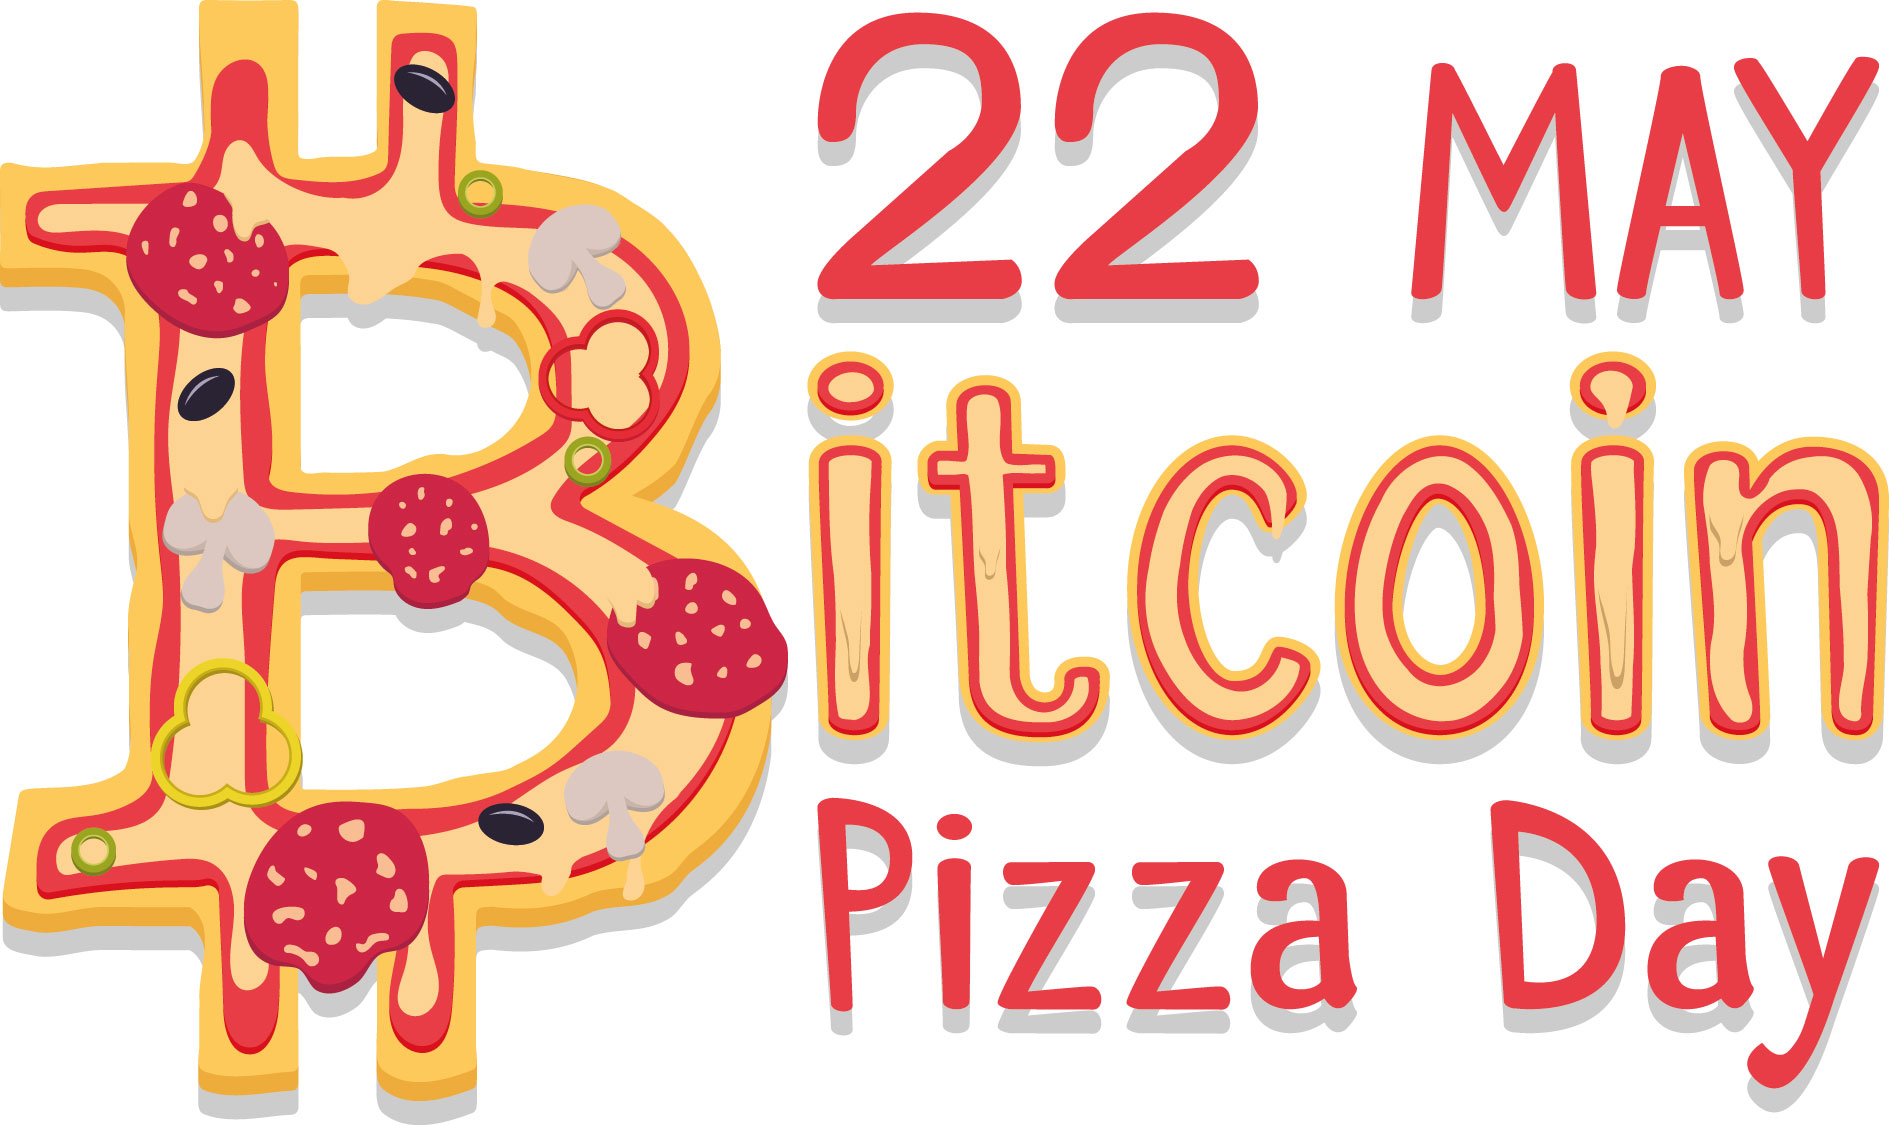 Der Bitcoin-Pizza-Day